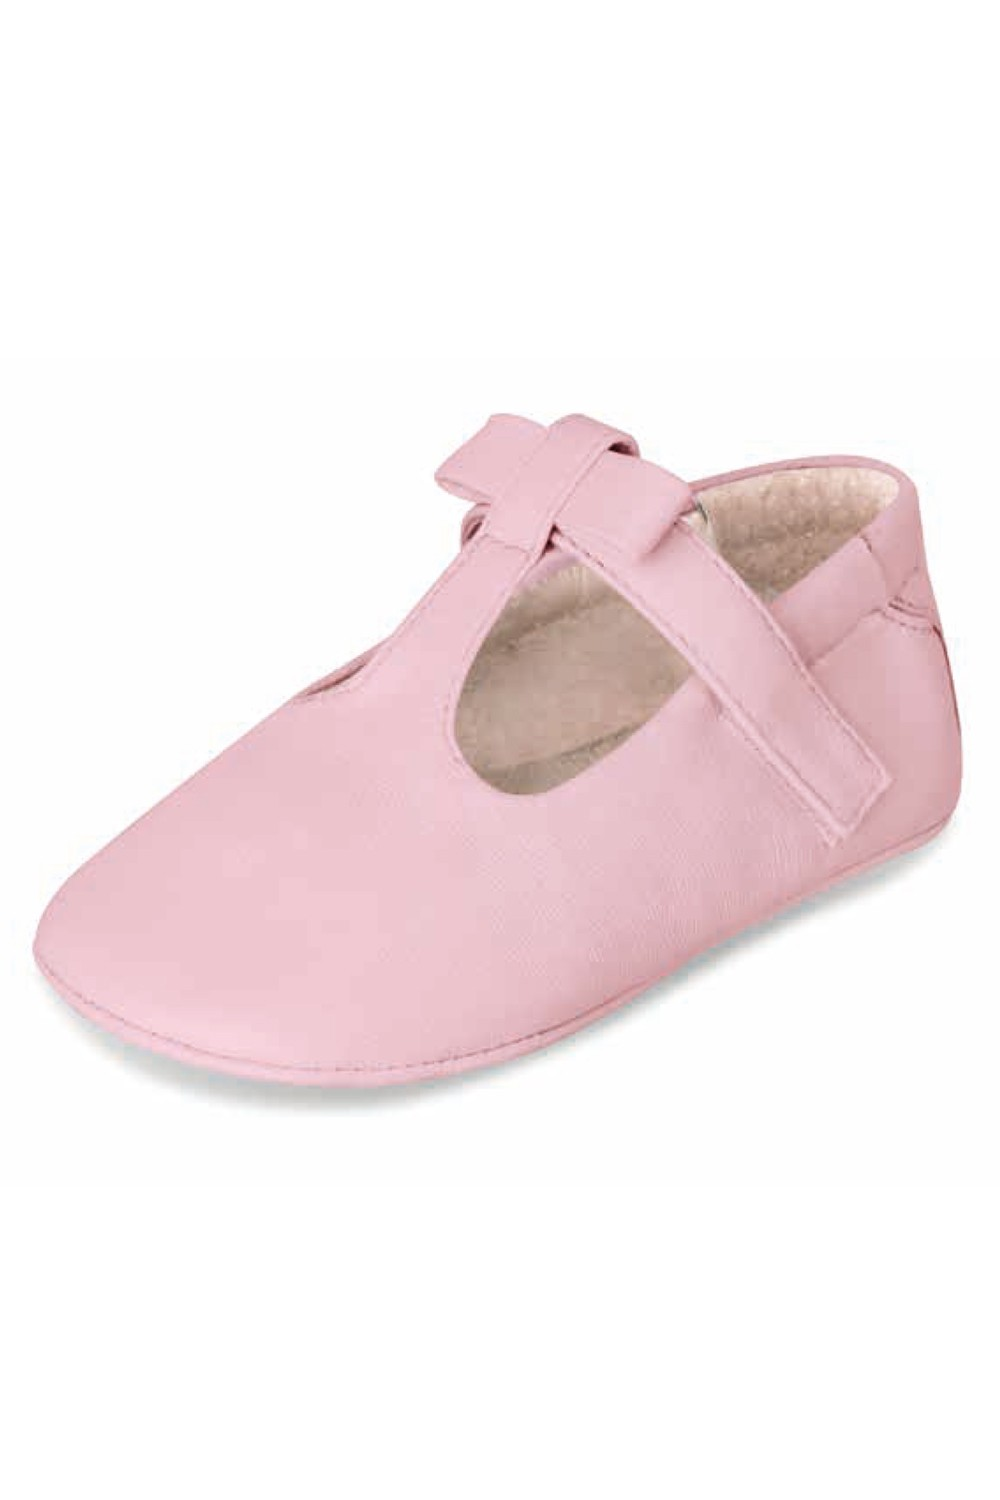 Josephine Babies Fashion Shoes